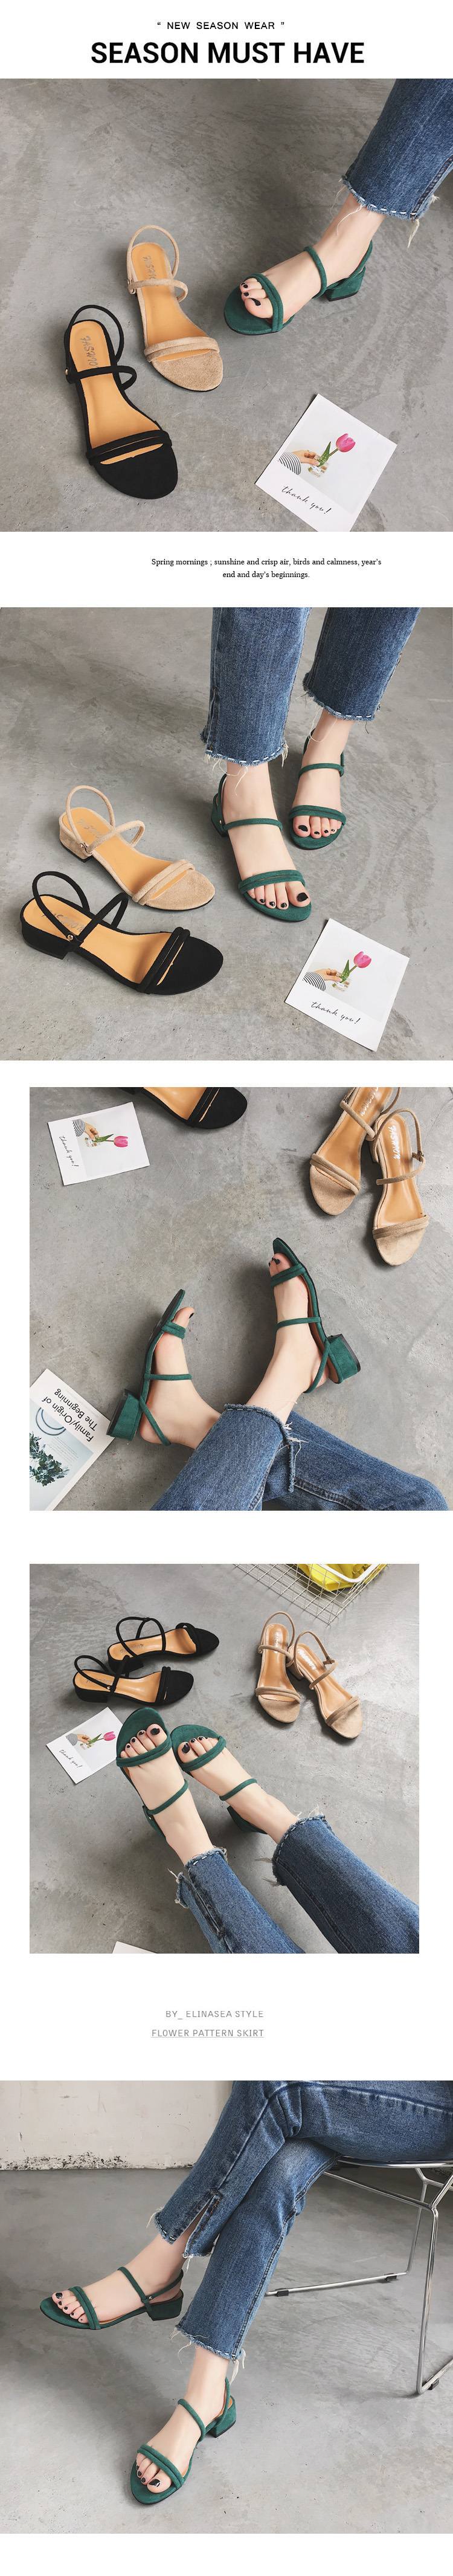 HTB1RsZBgTCWBKNjSZFtq6yC3FXaG new Flat outdoor slippers Sandals foot ring straps beaded Roman sandals fashion low slope with women's shoes low heel shoes x69